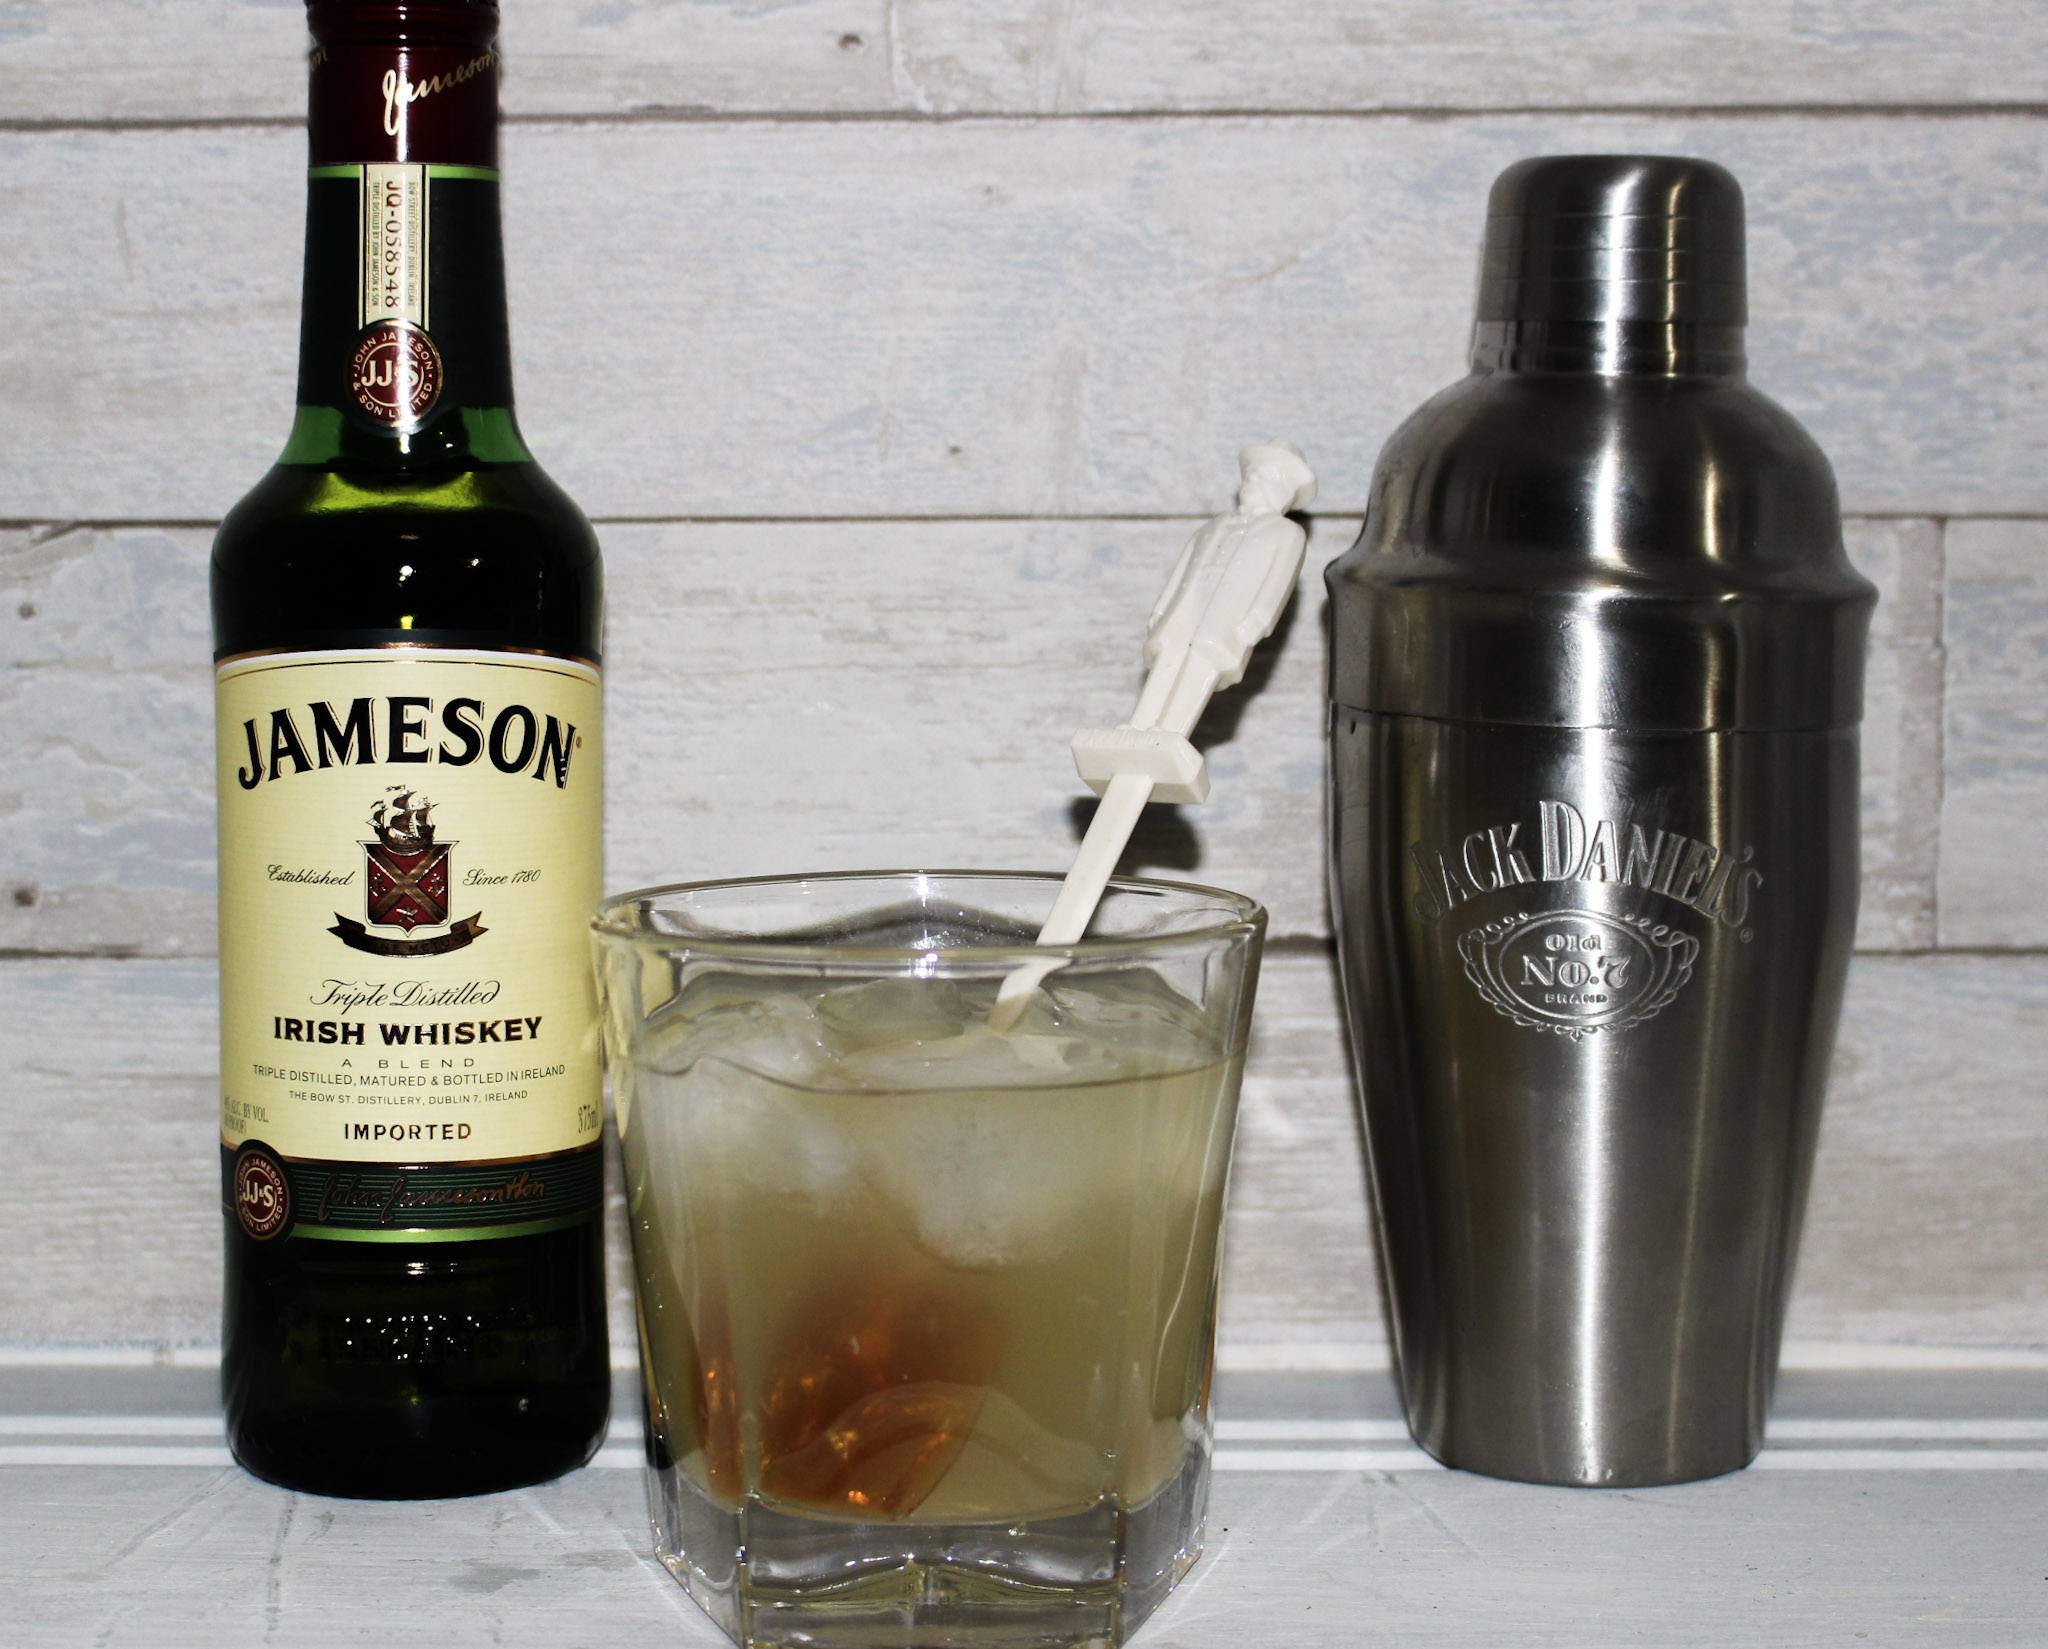 Make A Jameson Irish Lemonade For St. Patrick's Day #ourcraftymom #stpatricksdaycocktails